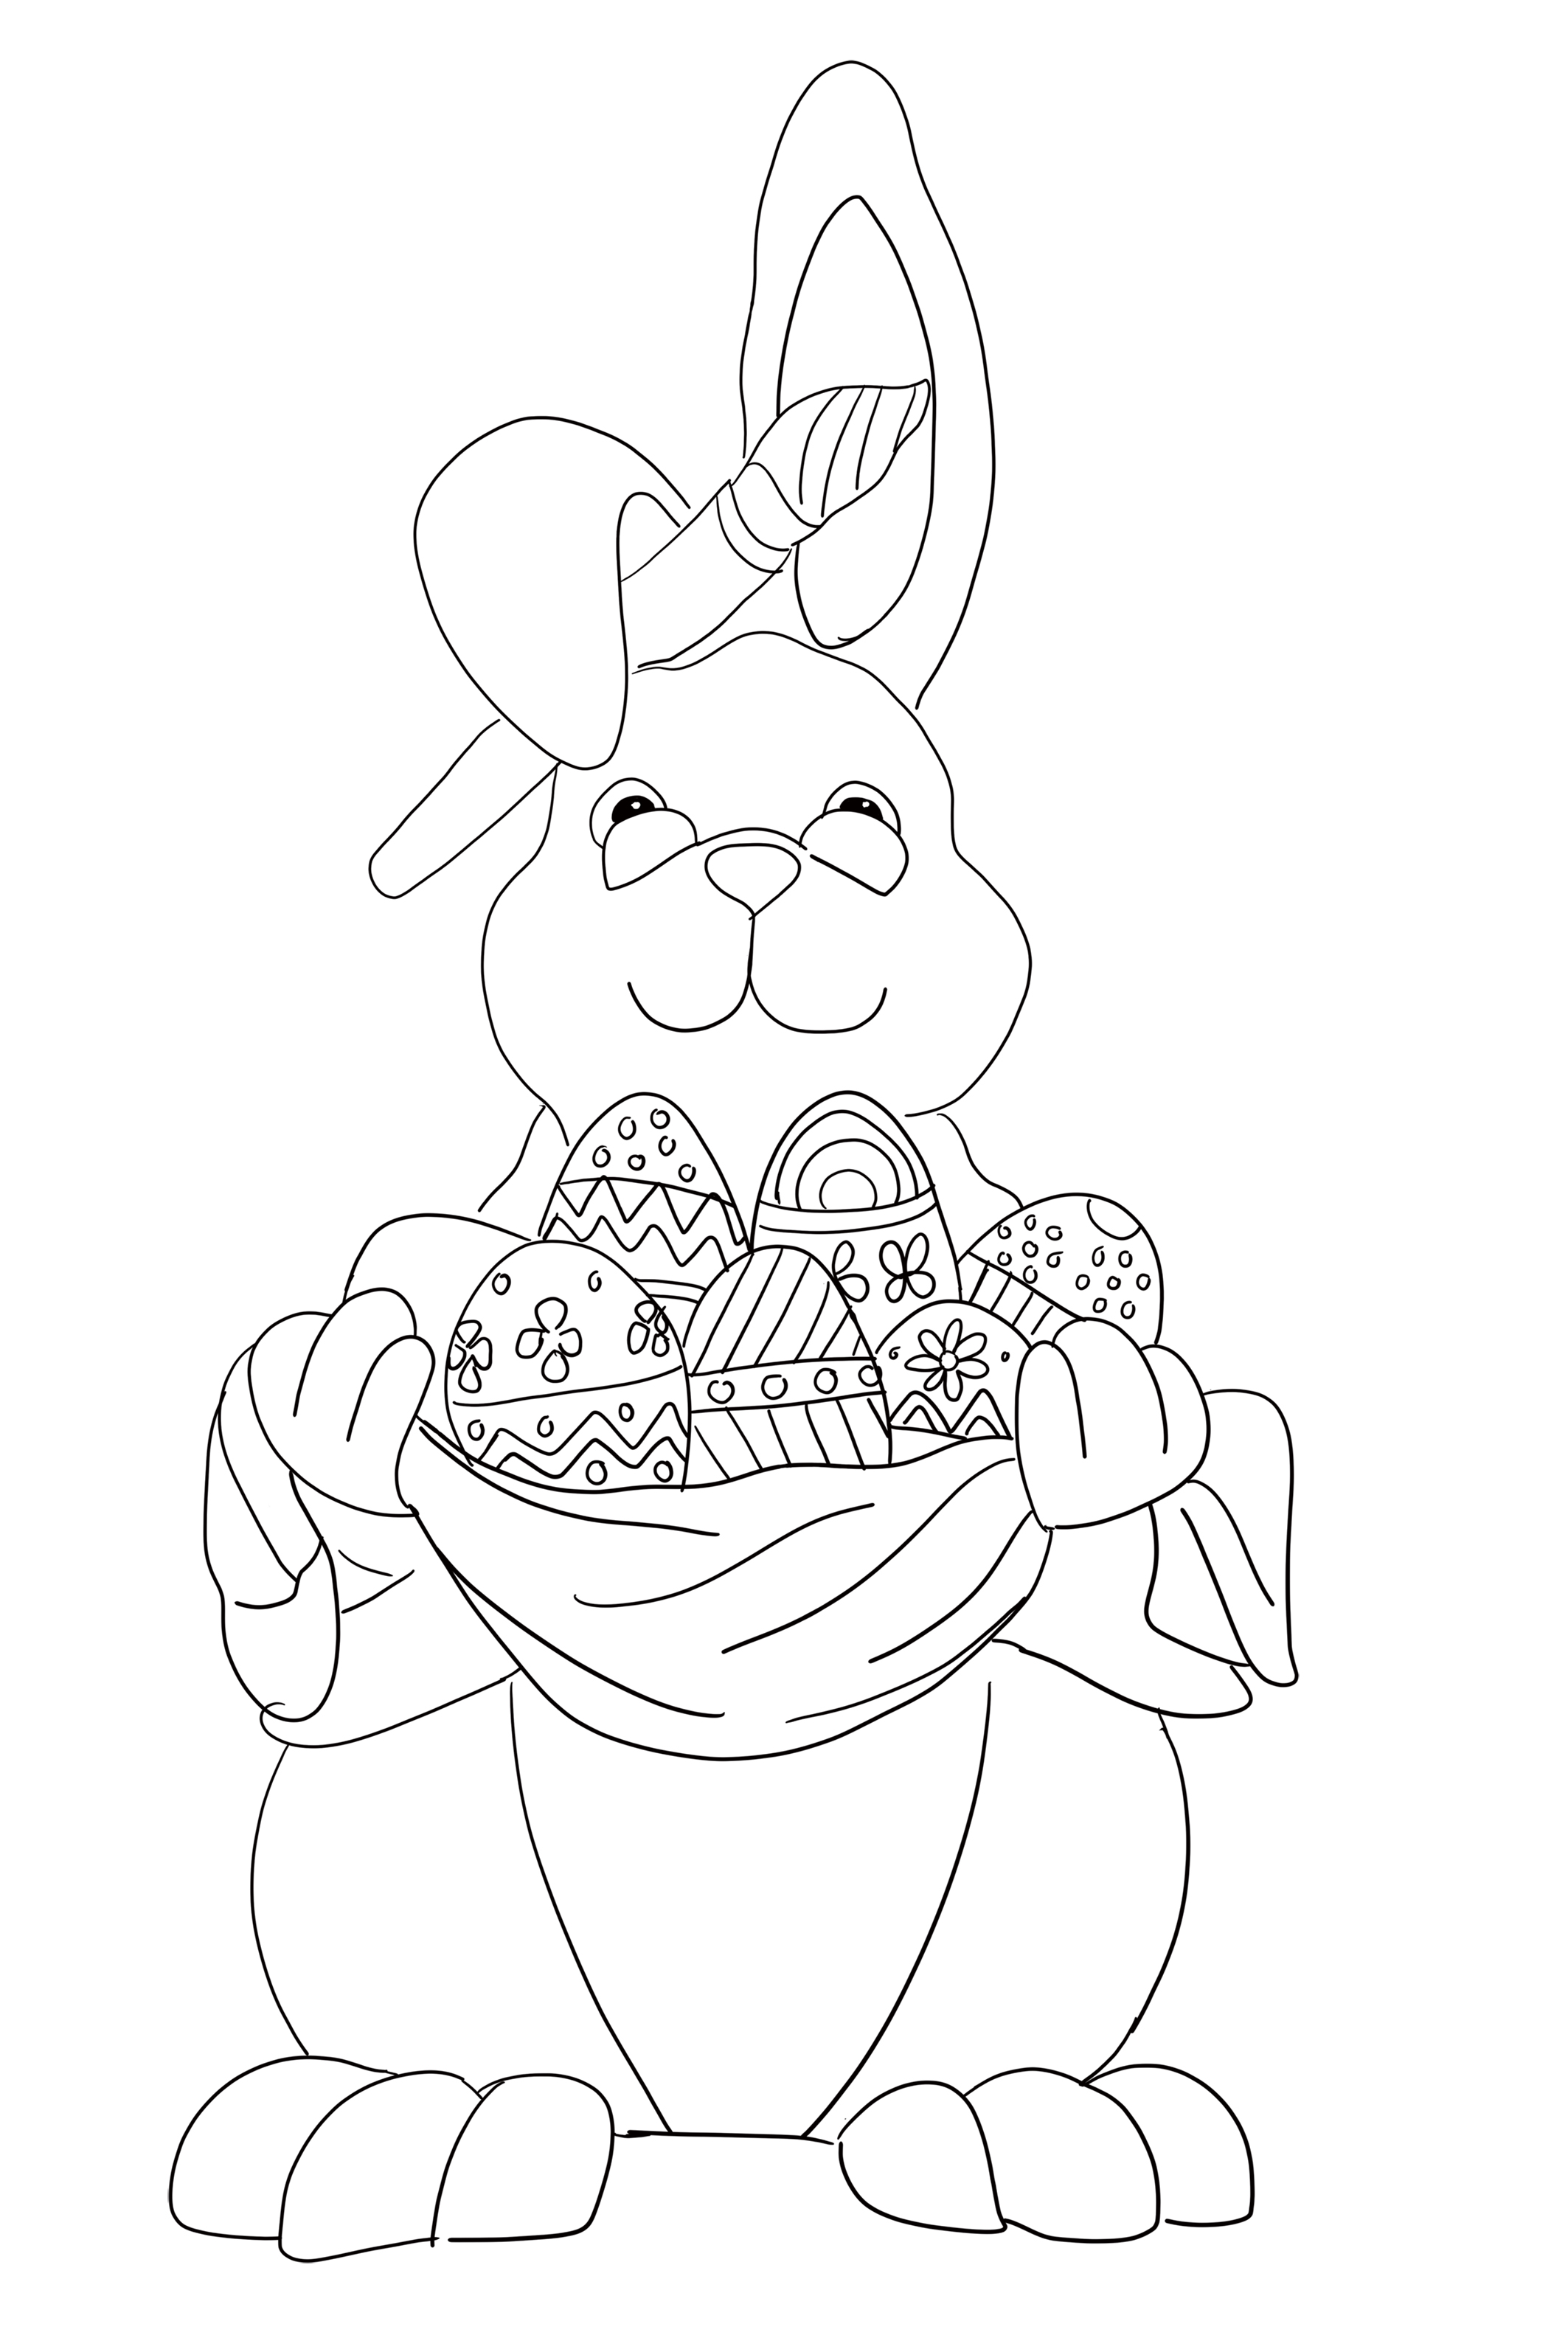 Easter coloring pages: Easter hare with eggs and paintbrush.